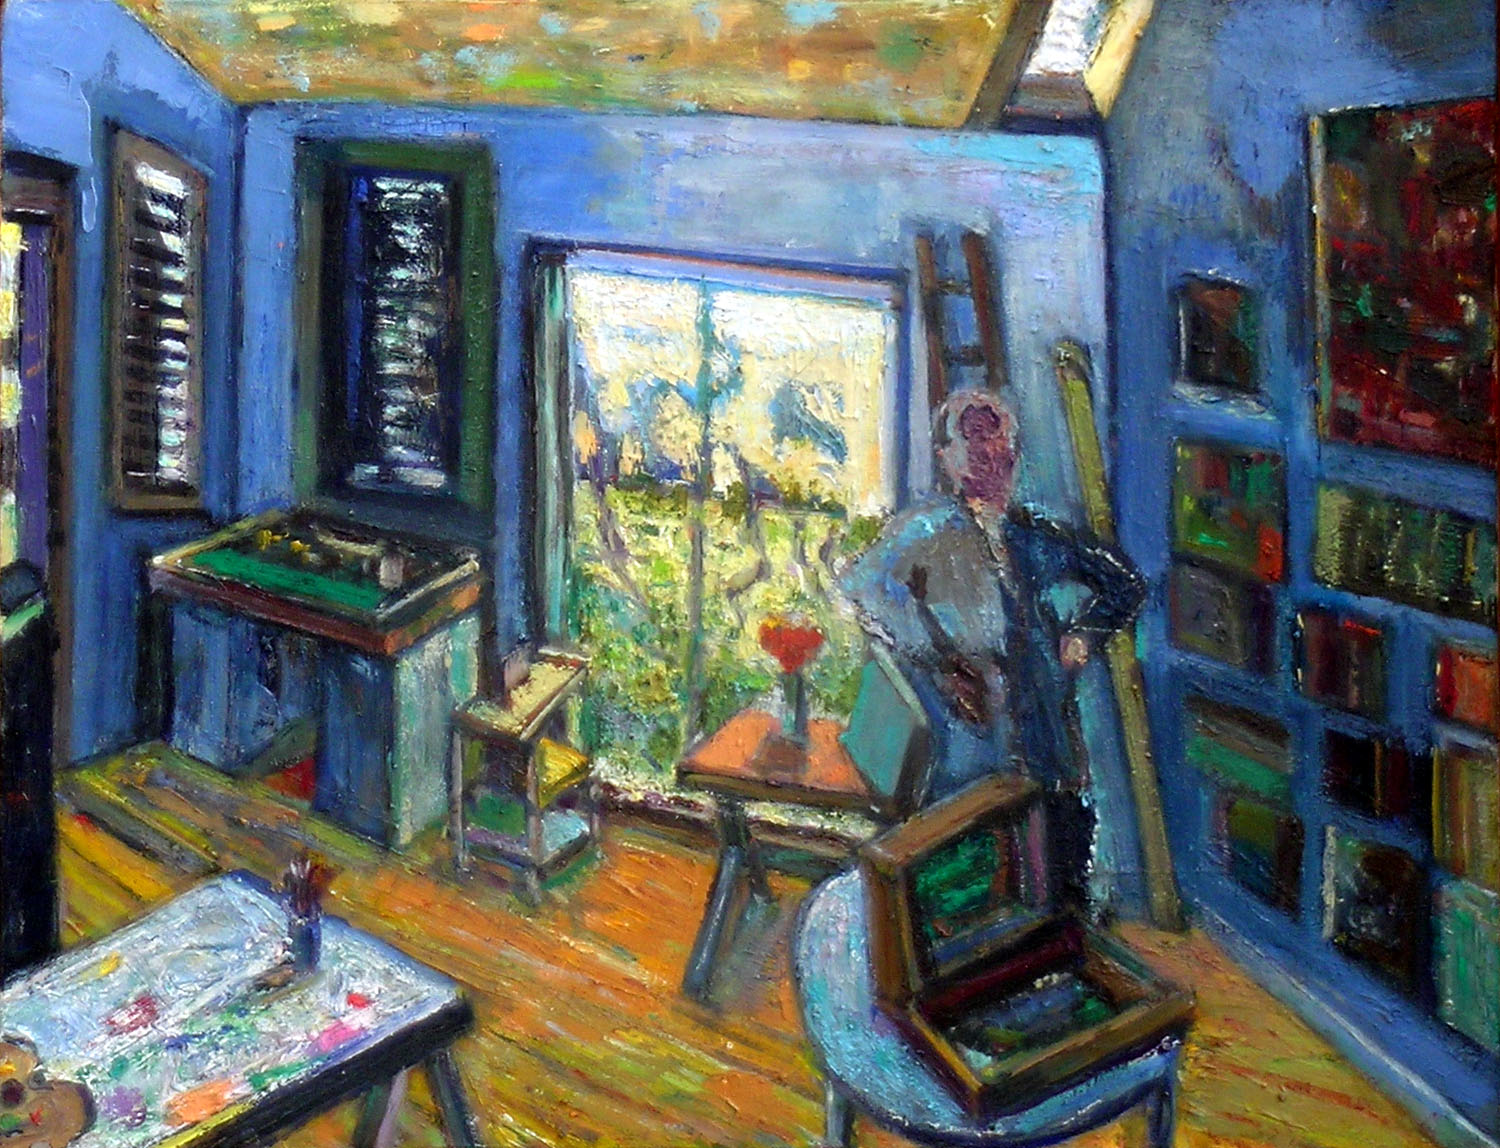 September Studio, 2005 oil on canvas, 14 x 18 inches